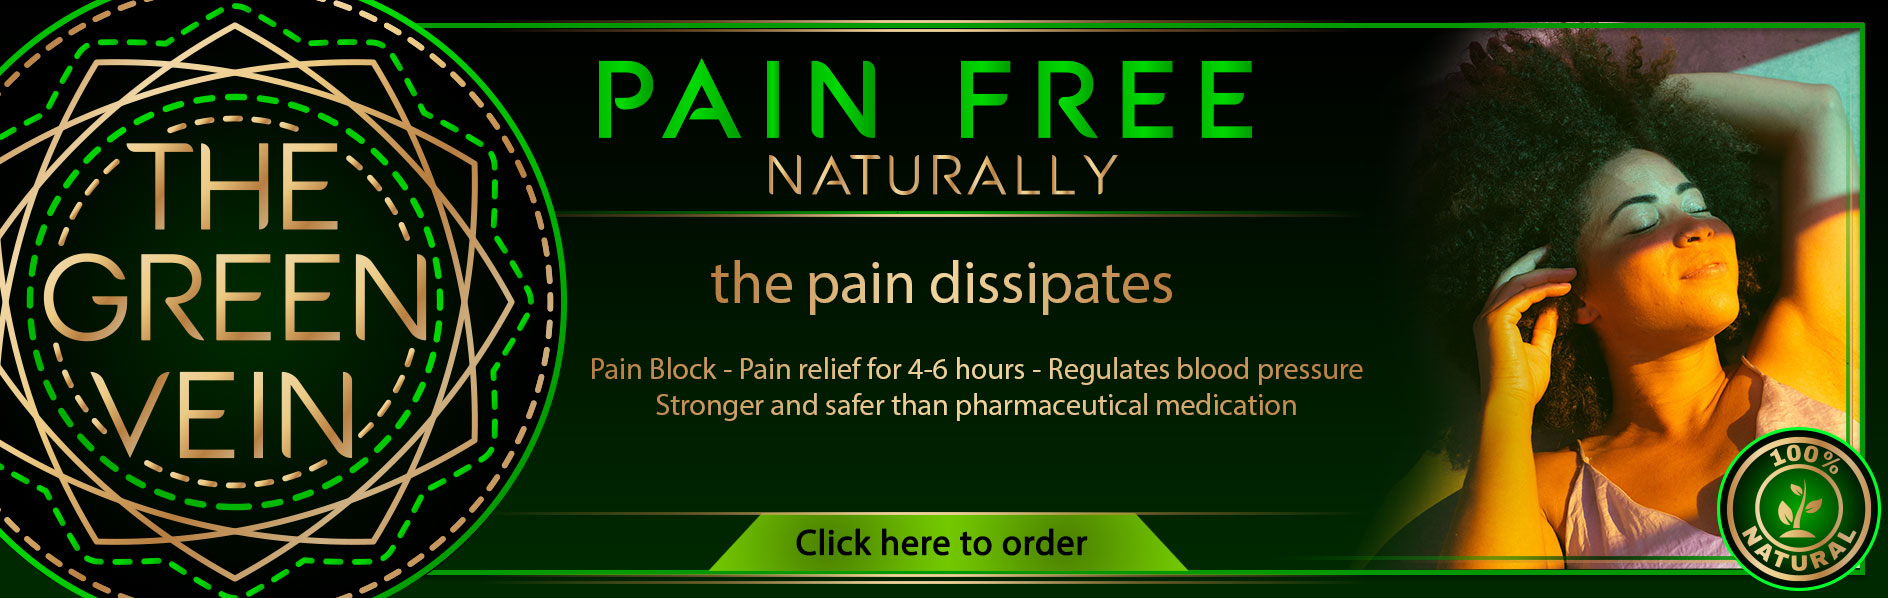 The-Green-Vein-Pain-Free-Banner